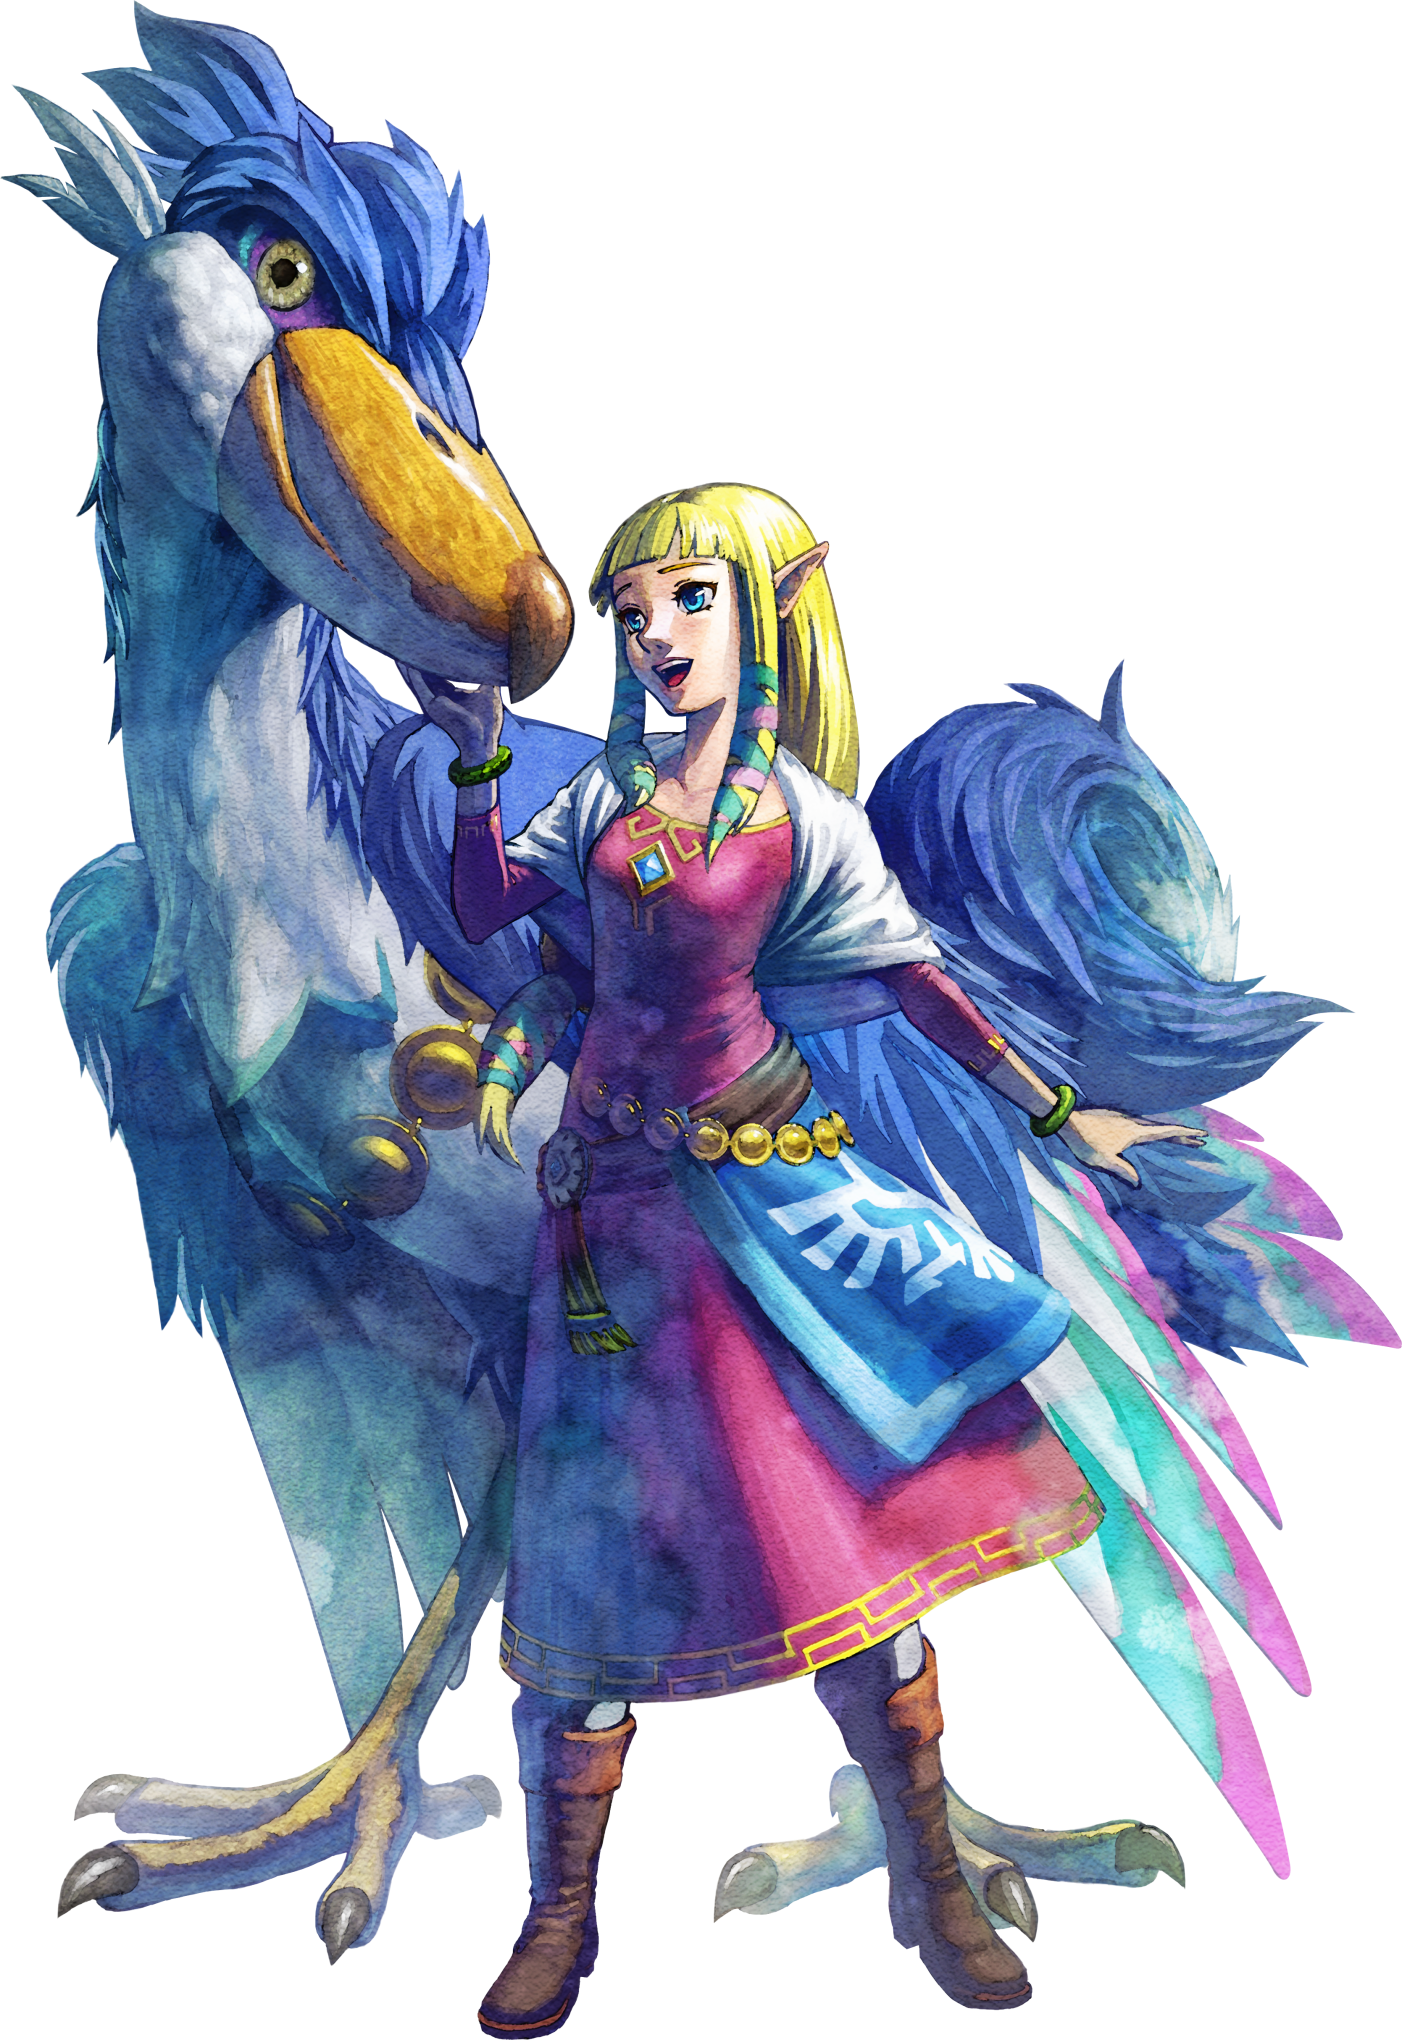 http://images.wikia.com/zelda/images/e/e5/Princess_Zelda_Artwork_%28Skyward_Sword%29.png